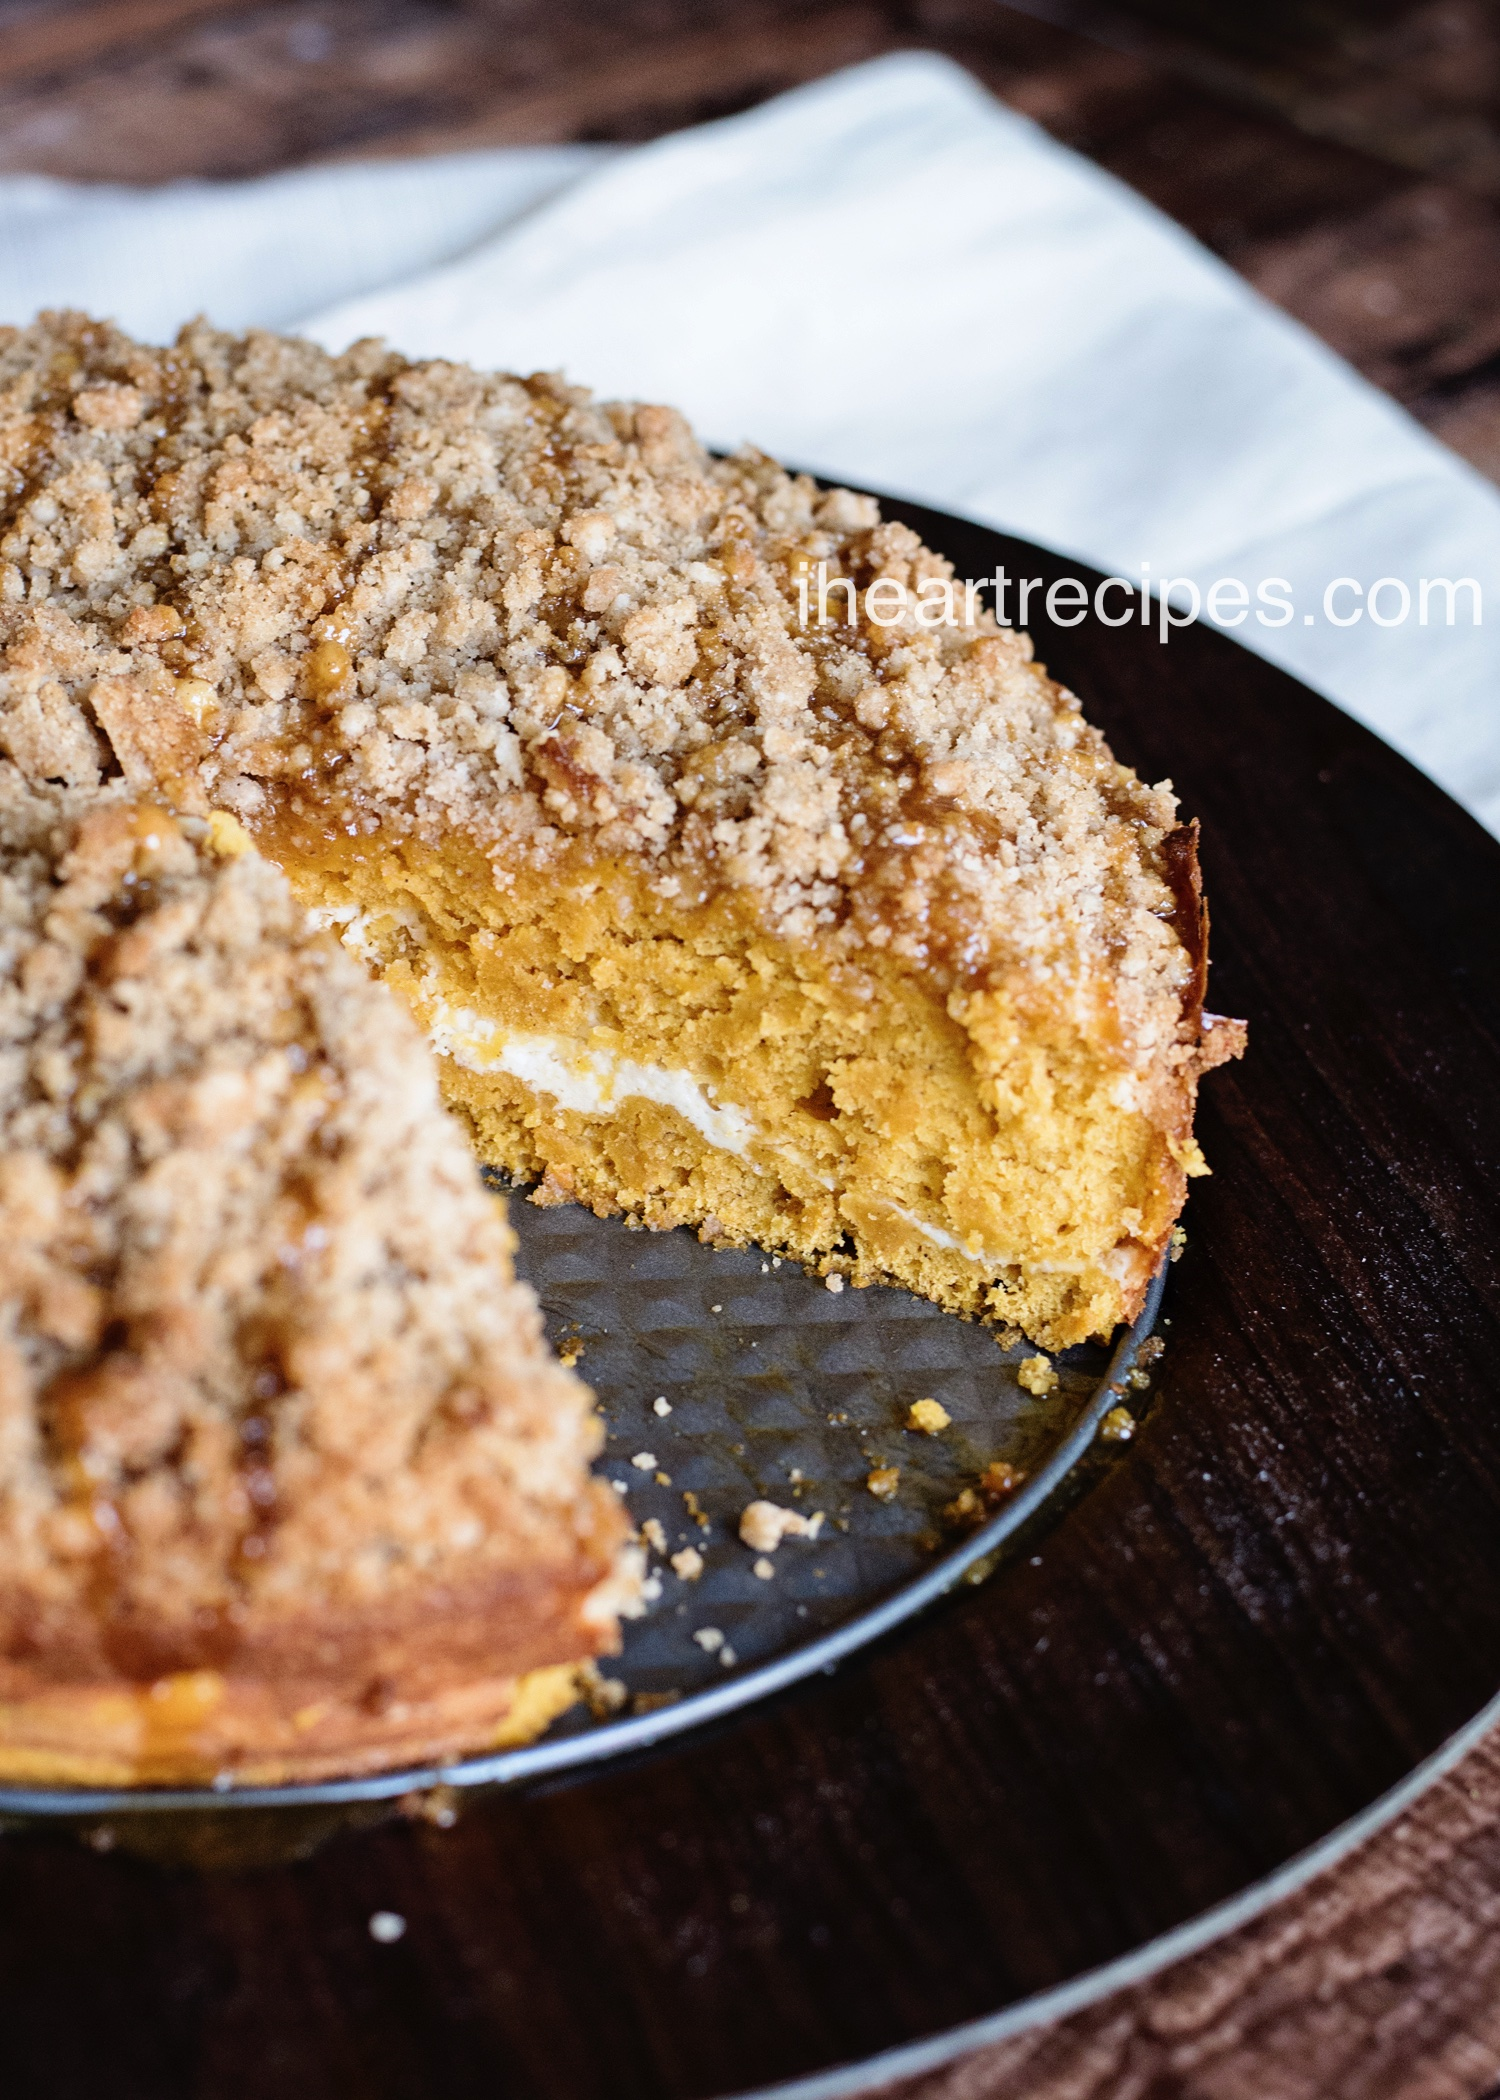 The coffee cake crumble is drizzled with a sweet caramel sauce